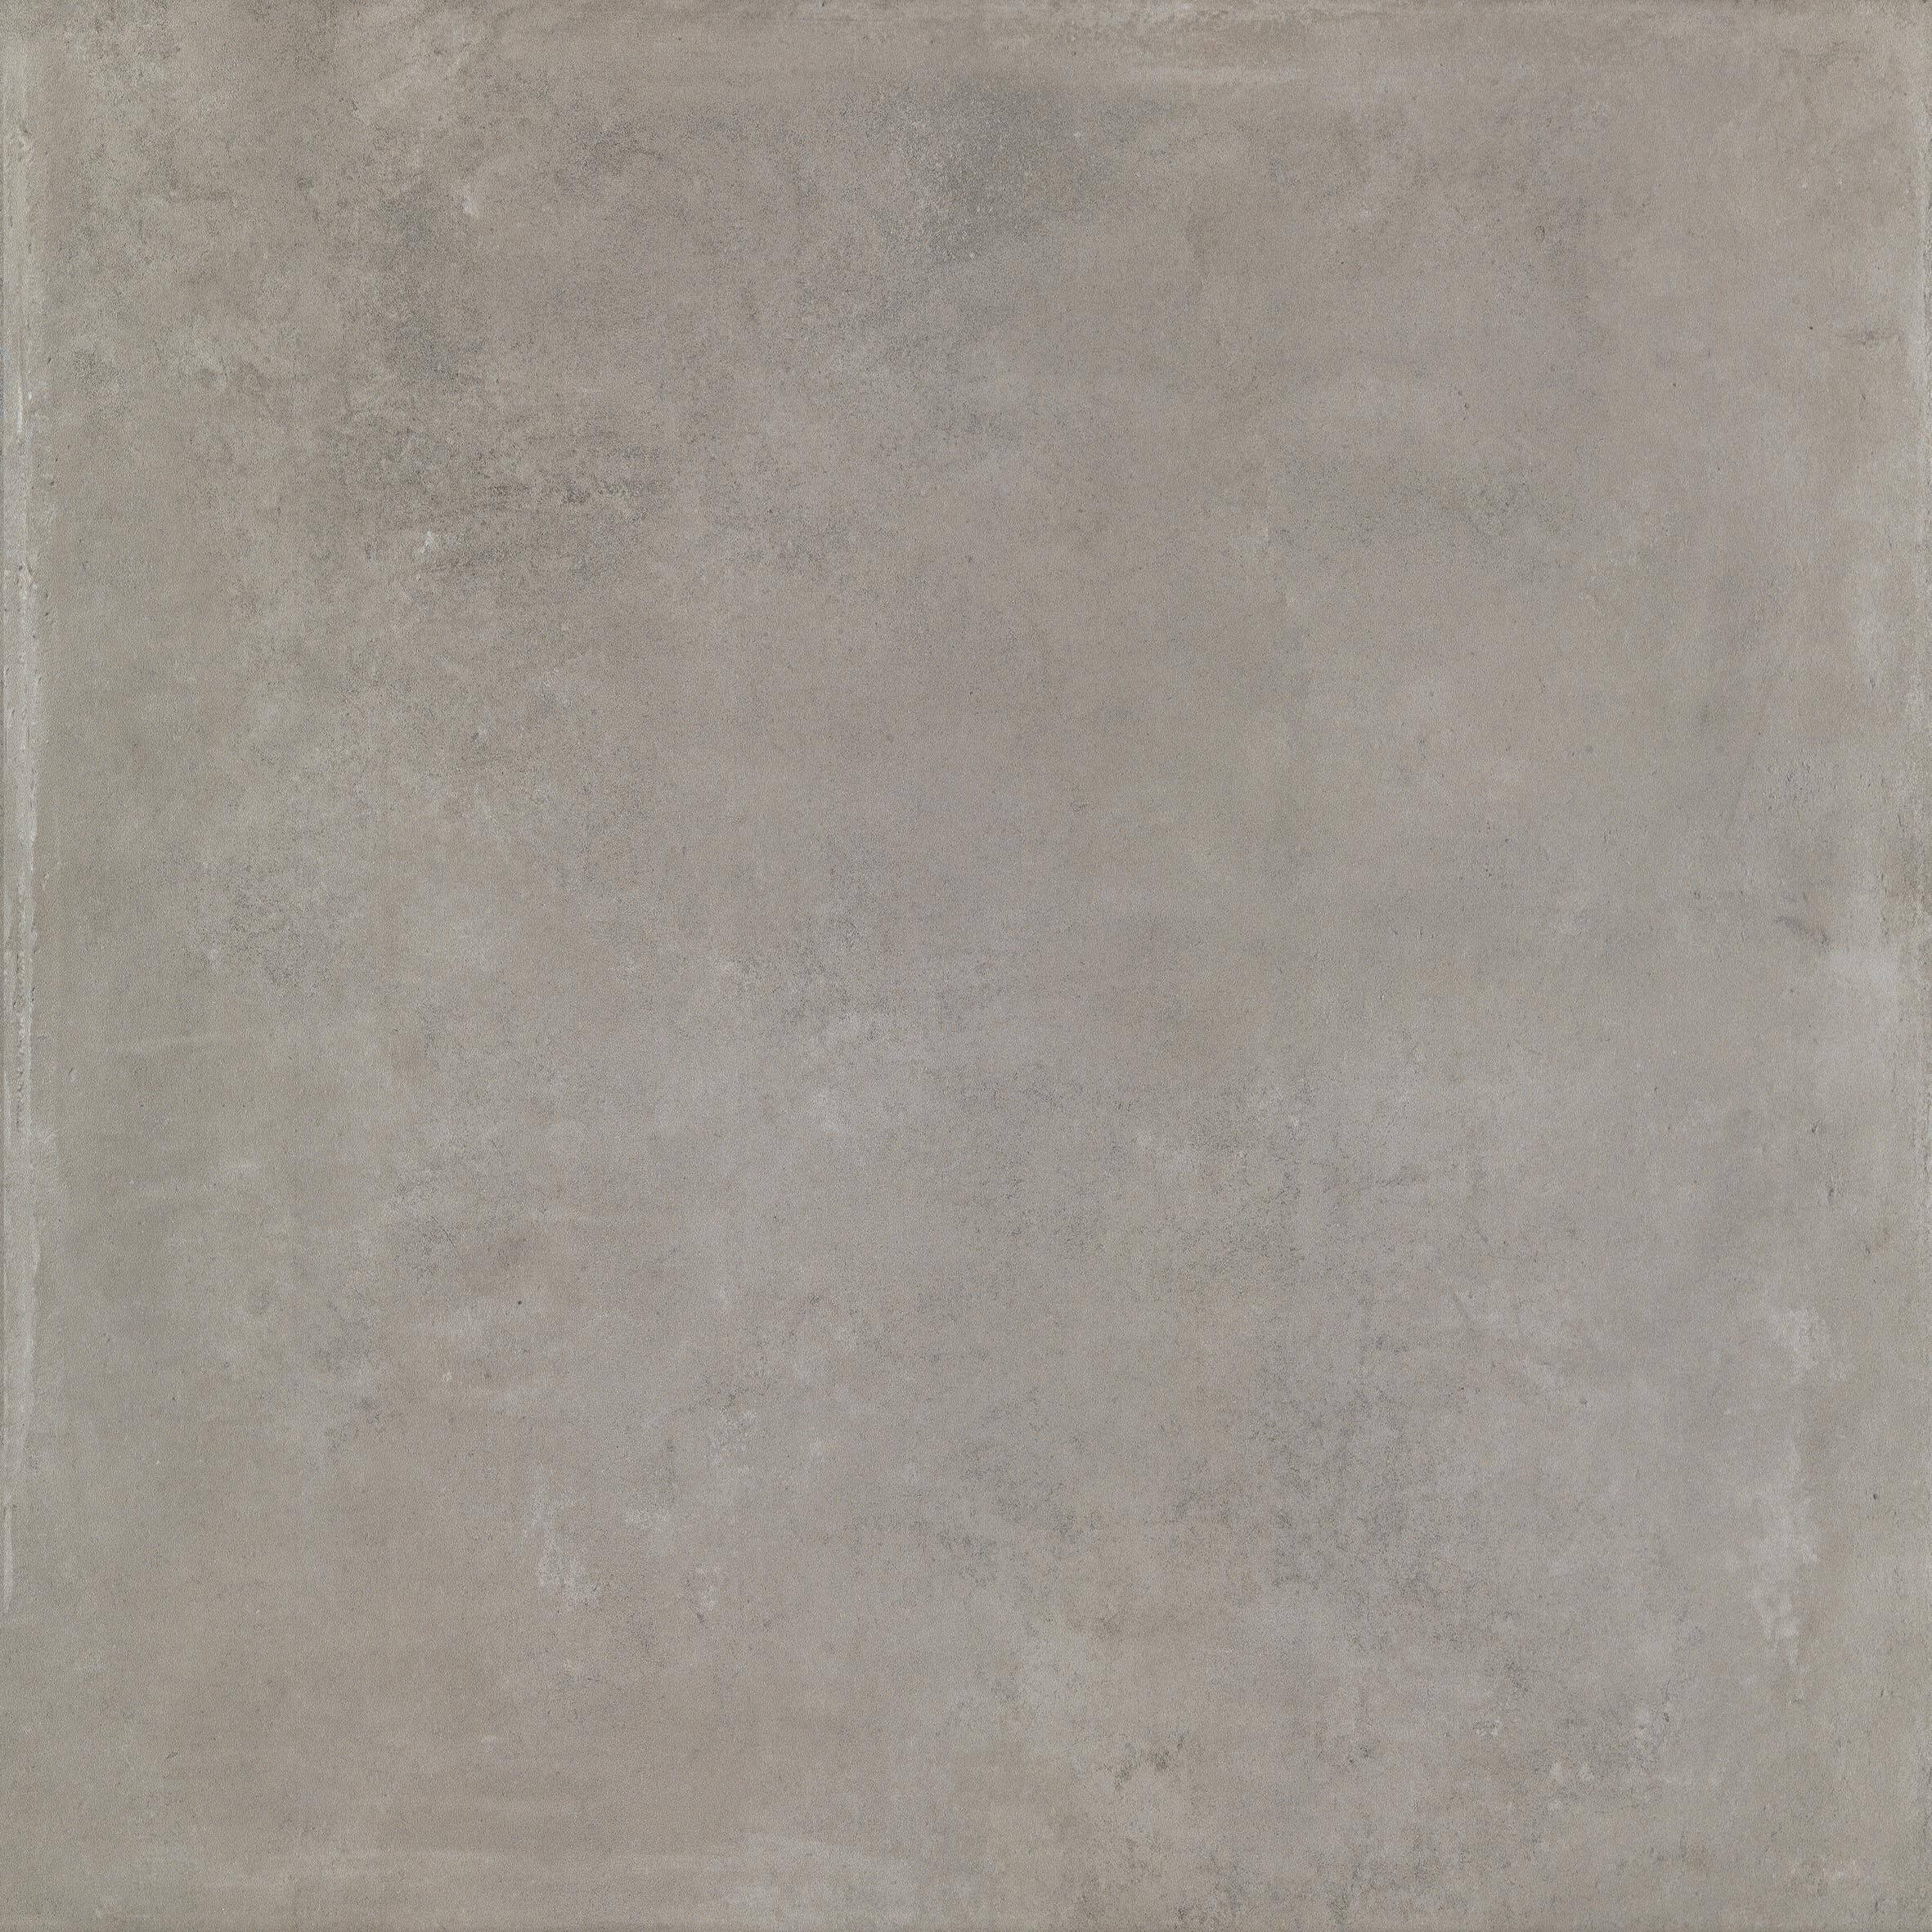 01348_CLAYMOOD_TAUPE NAT_RET 60x60